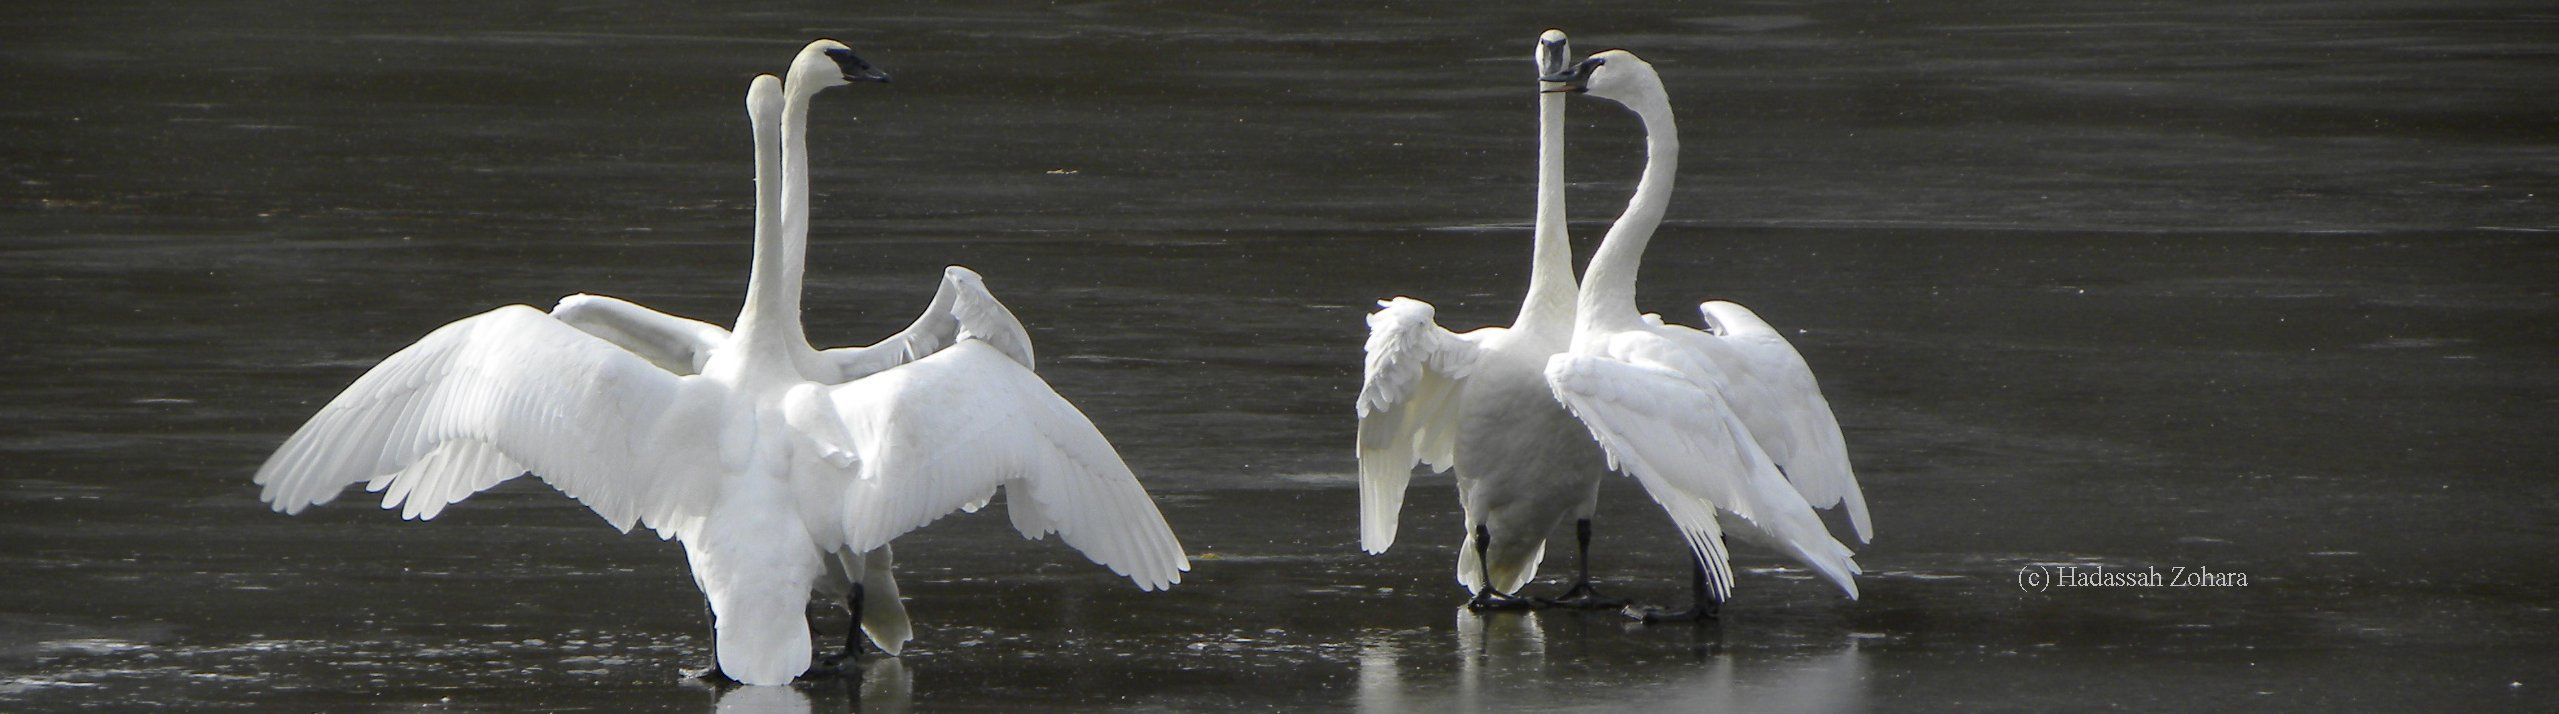 Trumpeter Swans communicate through voice and wing display